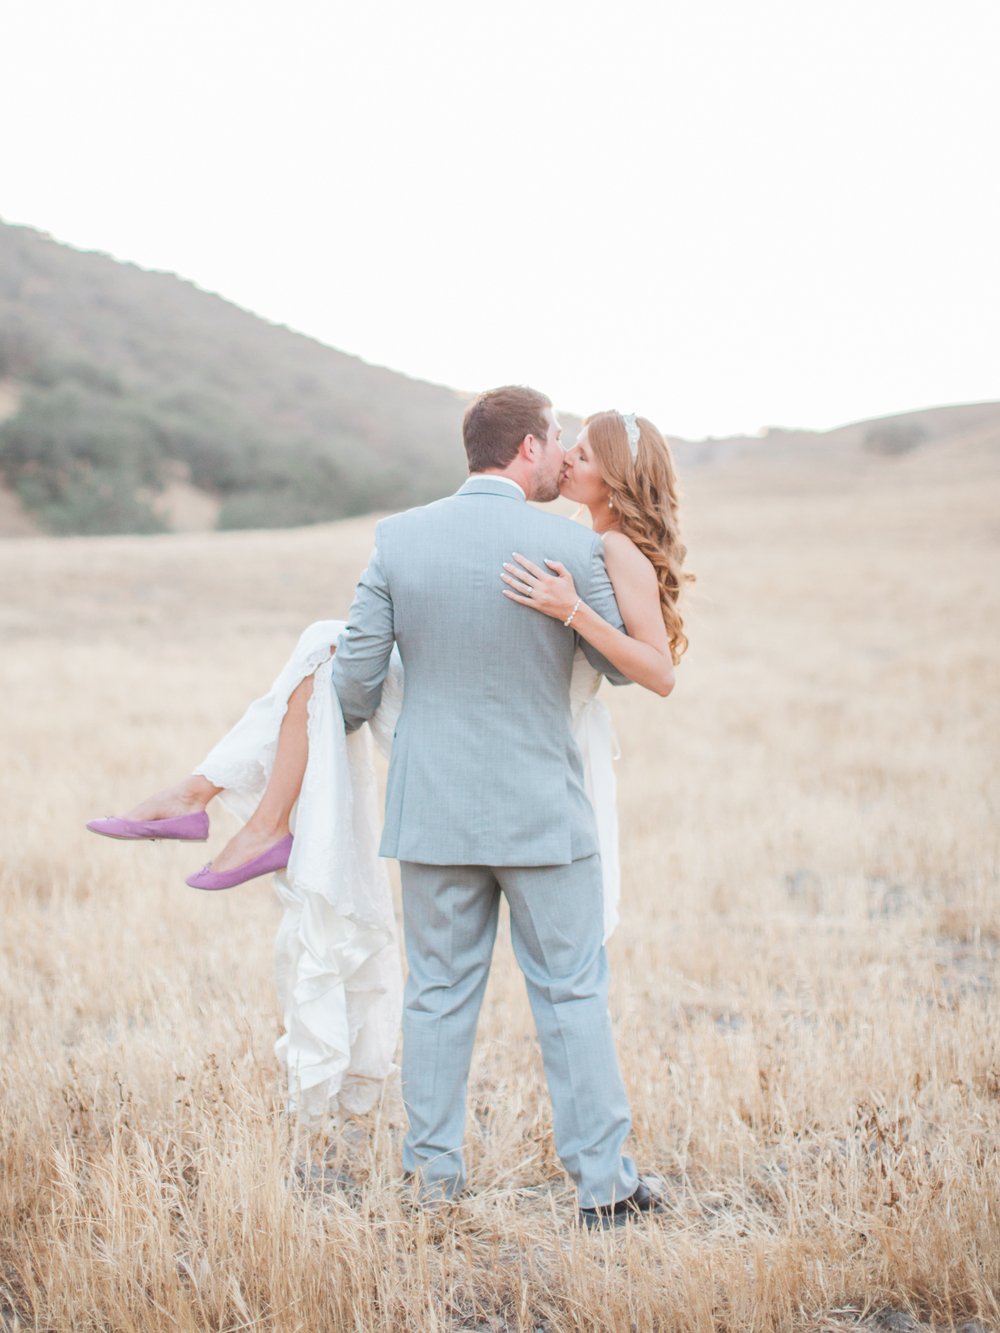 Rancho San Antonia Wedding by San Luis Obispo Wedding photographer Skyla Walton (82 of 93).jpg